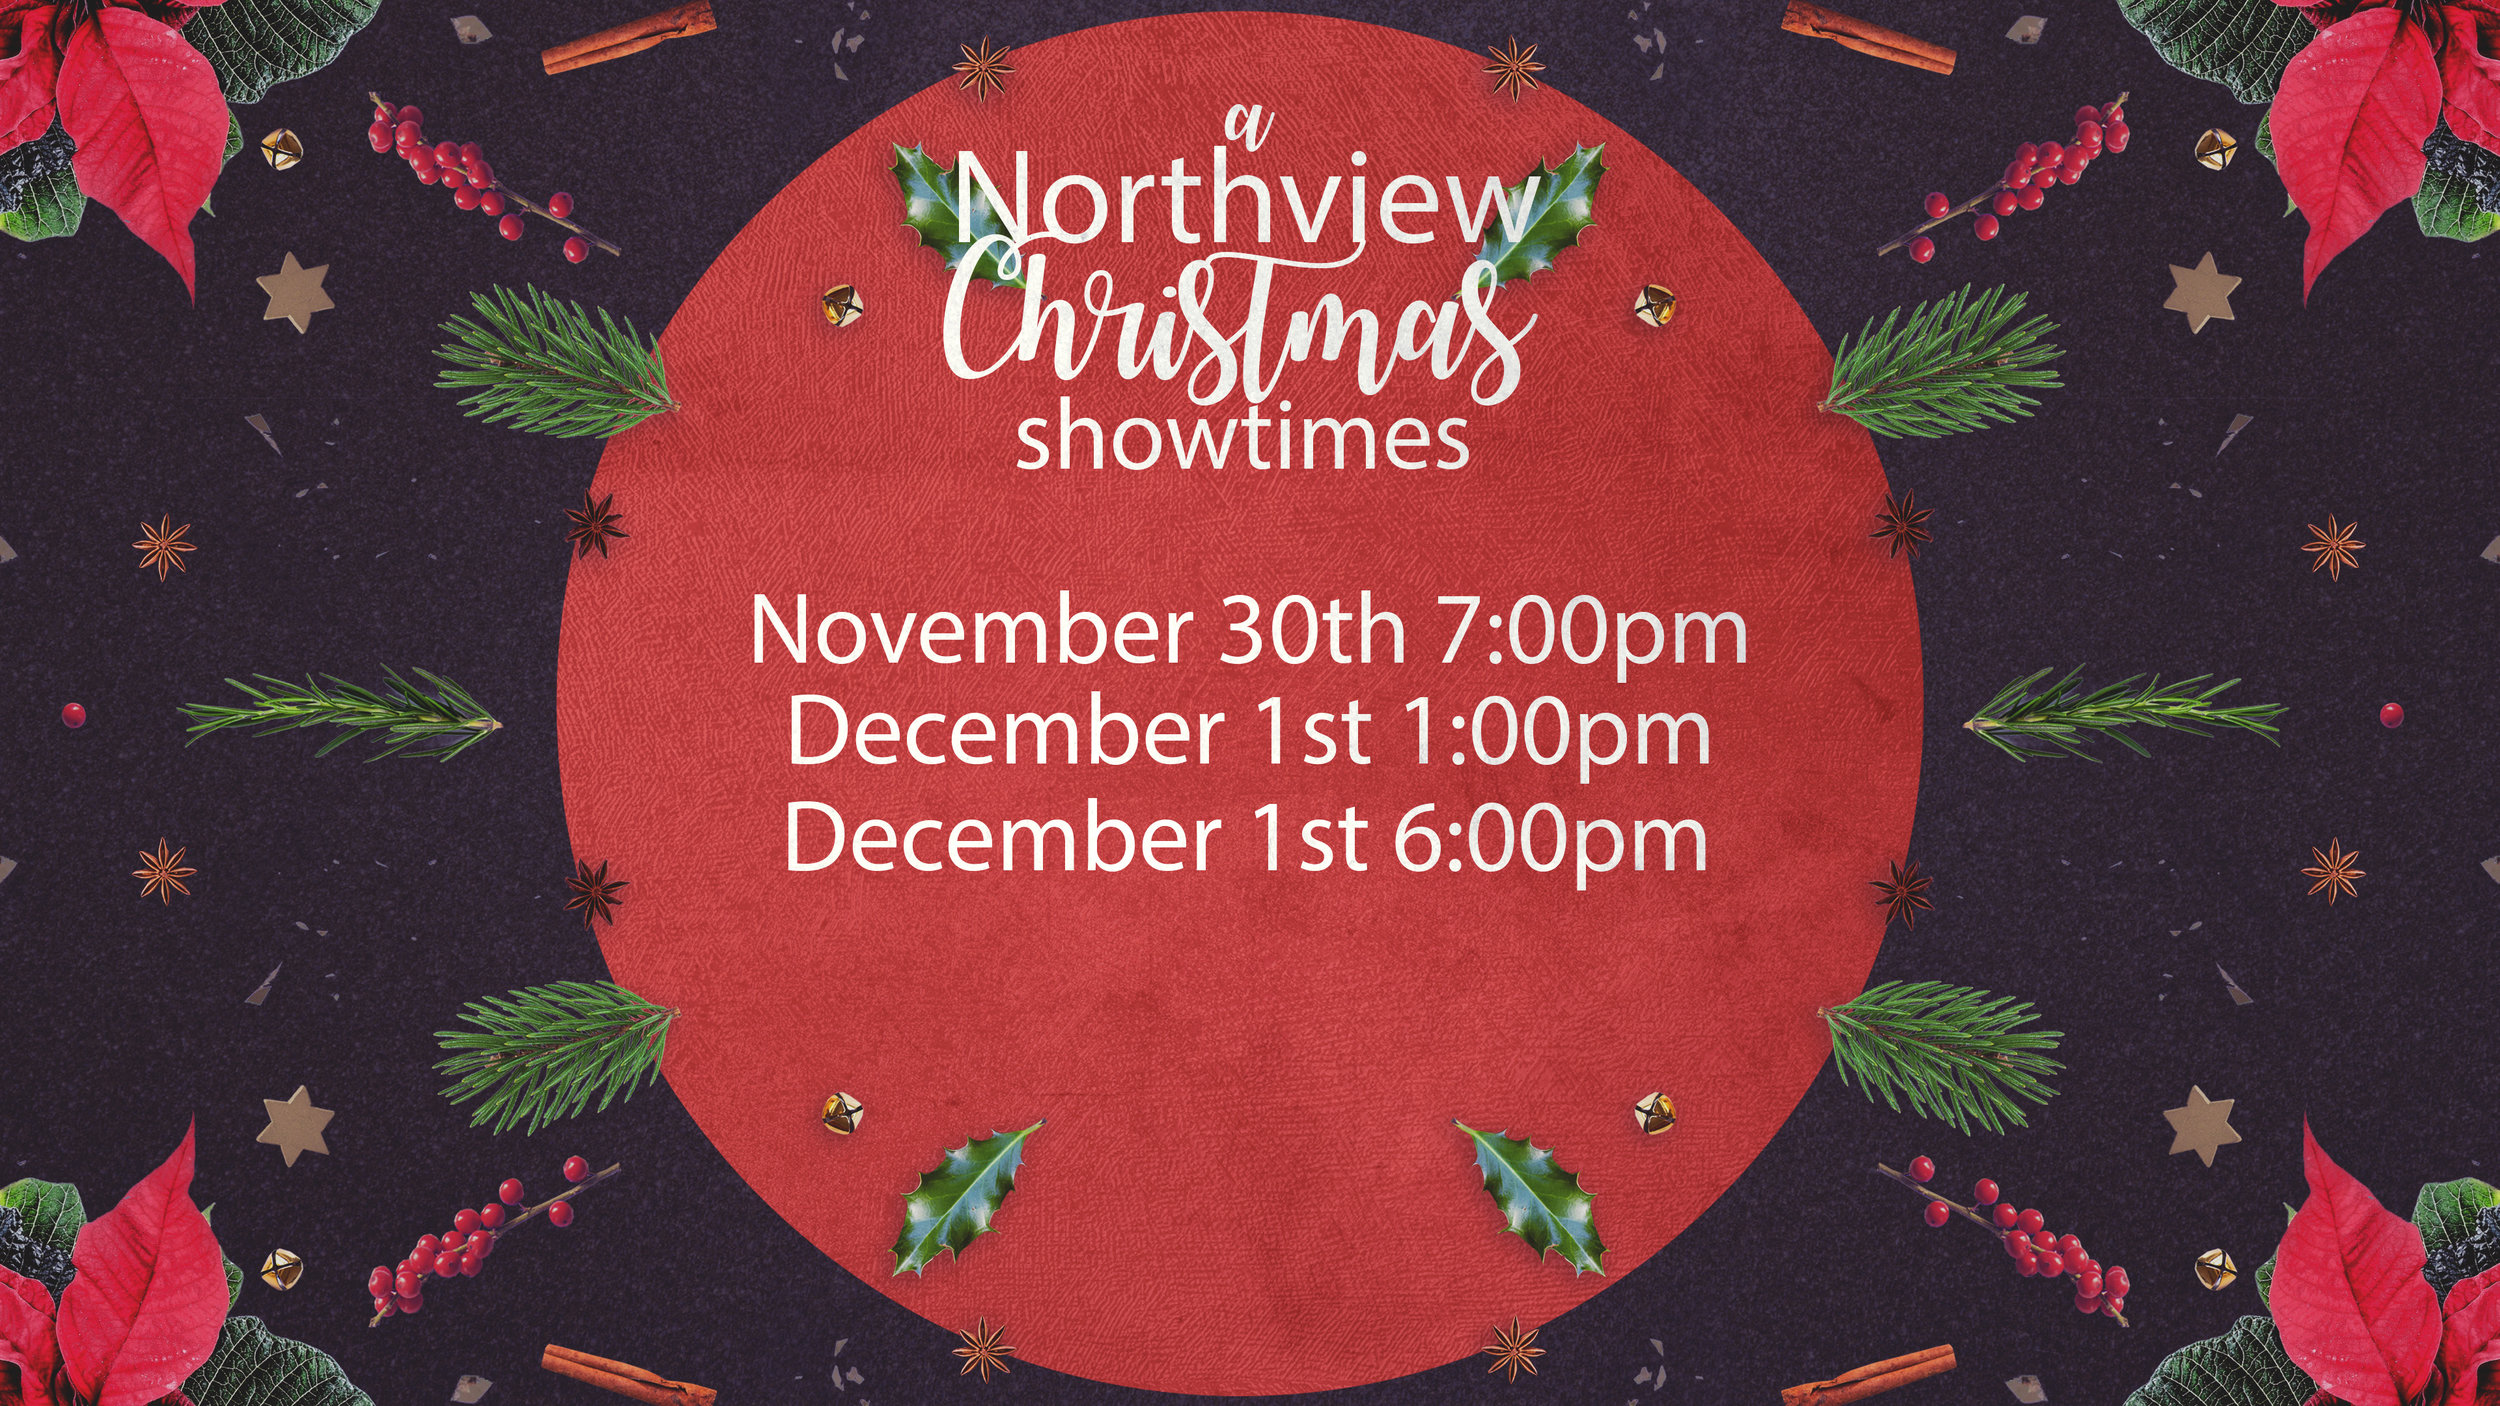 NorthviewChristmastest1back2 copy copy.jpg